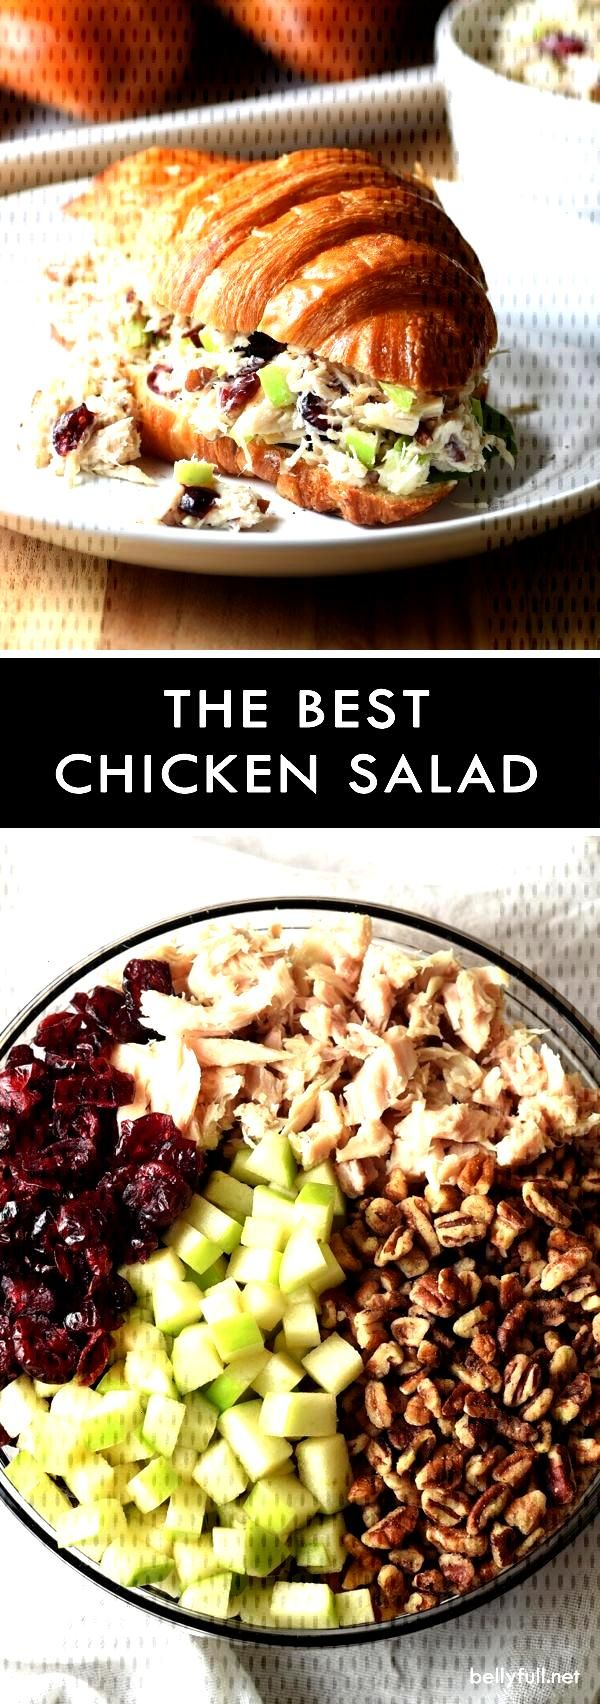 Salads : This is the BEST chicken salad. It could not be easier or more delicious. With chicken, cr